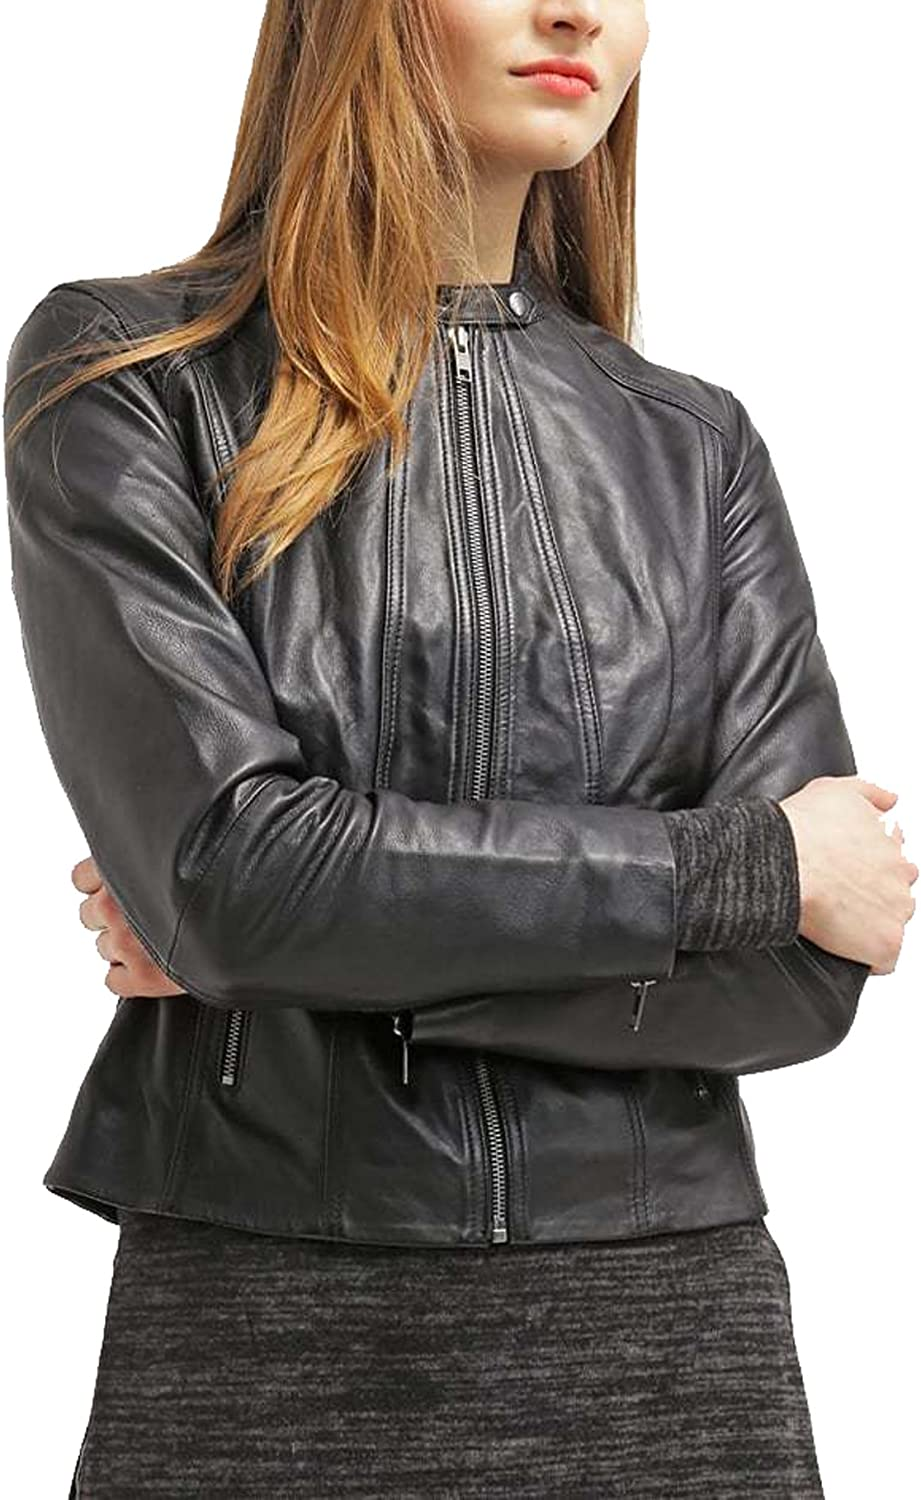 Kingdom Leather New Women Genuine Real Leather Jacket Ladies Slim Fit Biker Coat XW644